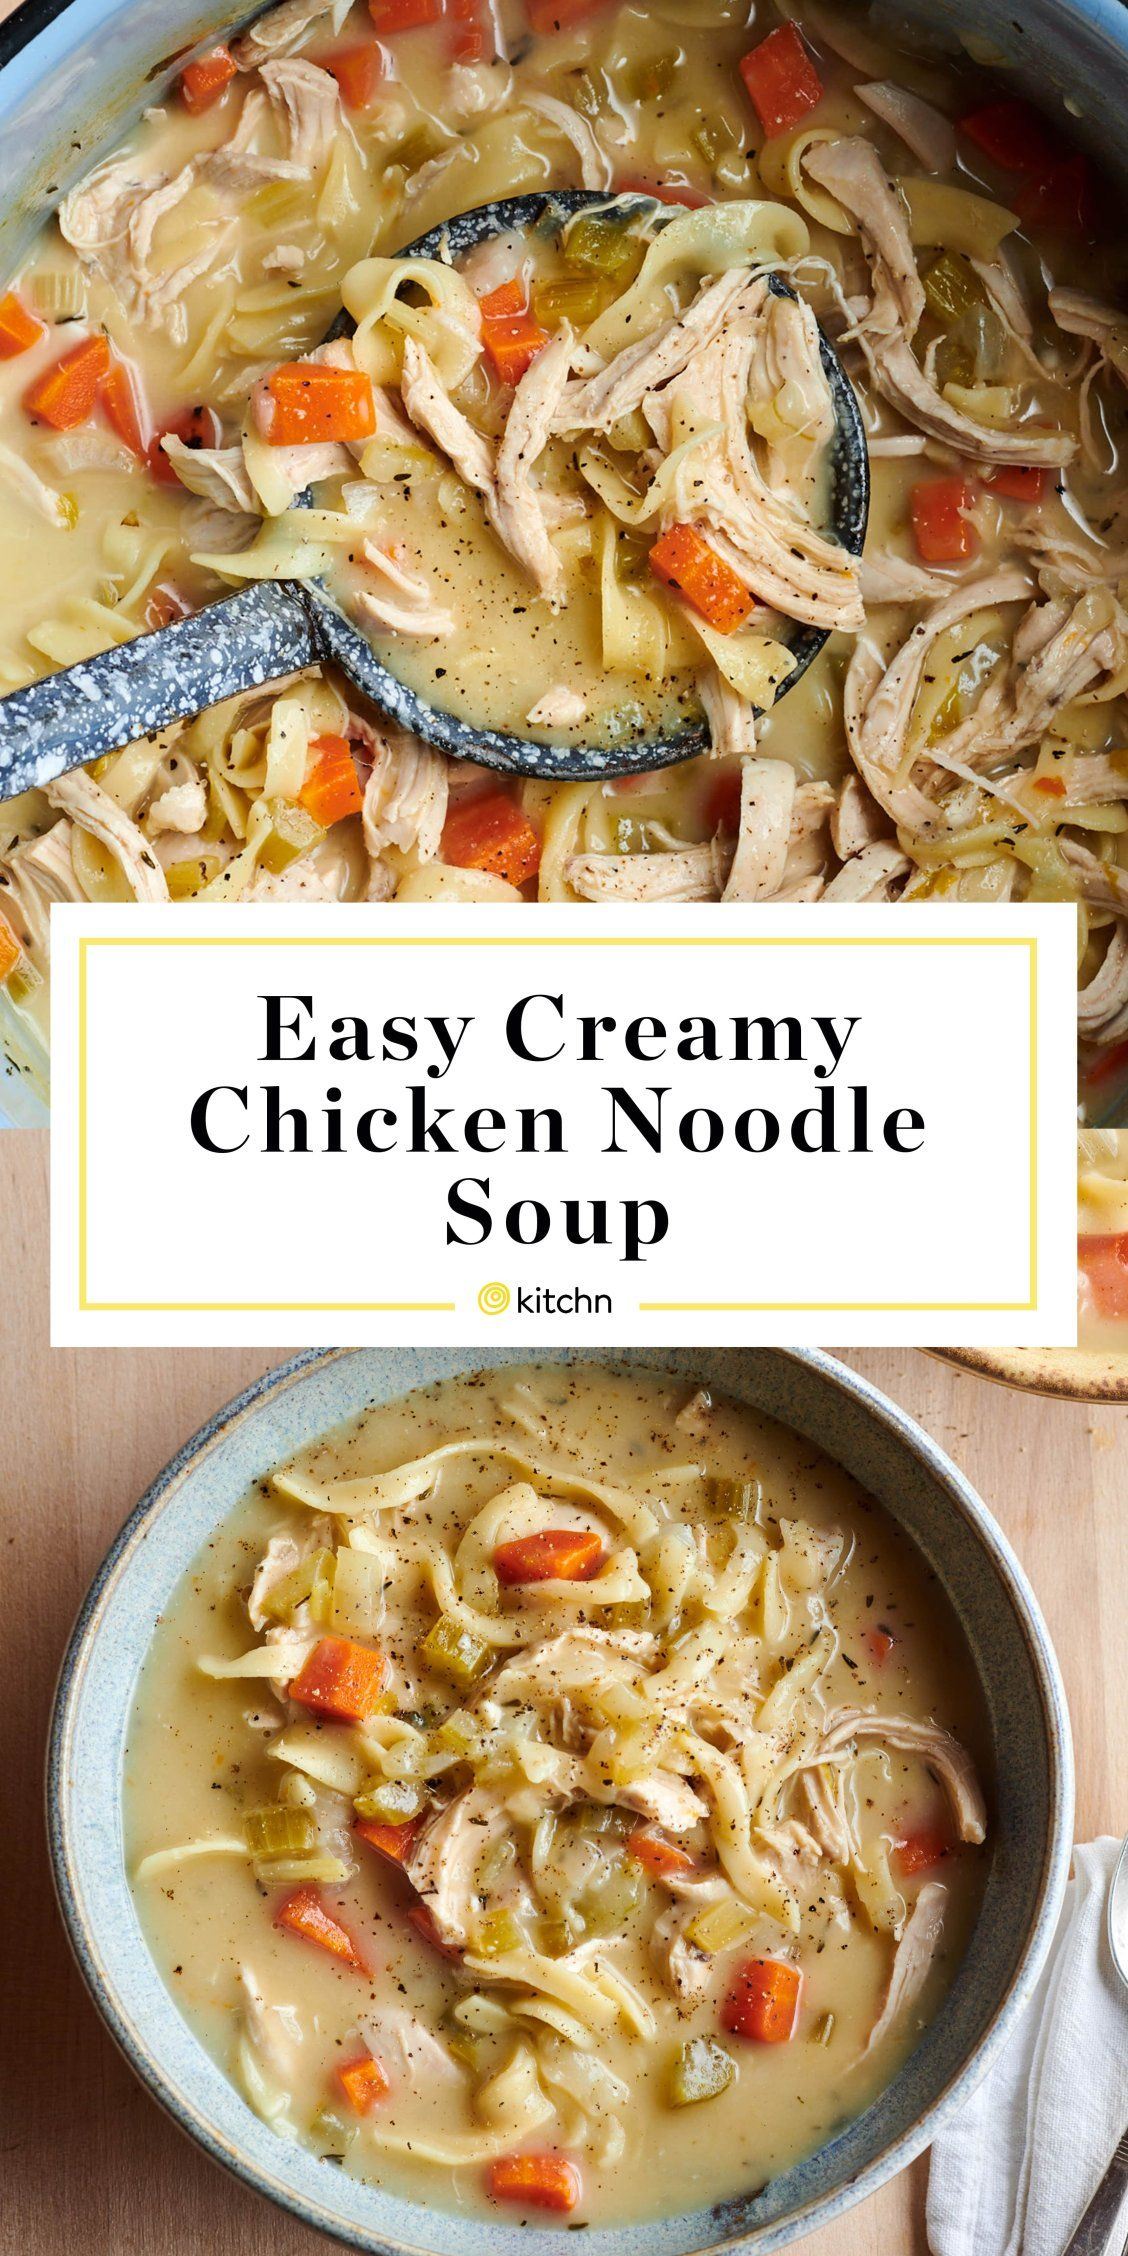 Creamy Chicken Noodle Soup Is The Comfort Food Mvp Recipe Creamy Chicken Noodle Soup Soup Recipes Chicken Noodle Chicken Noodle